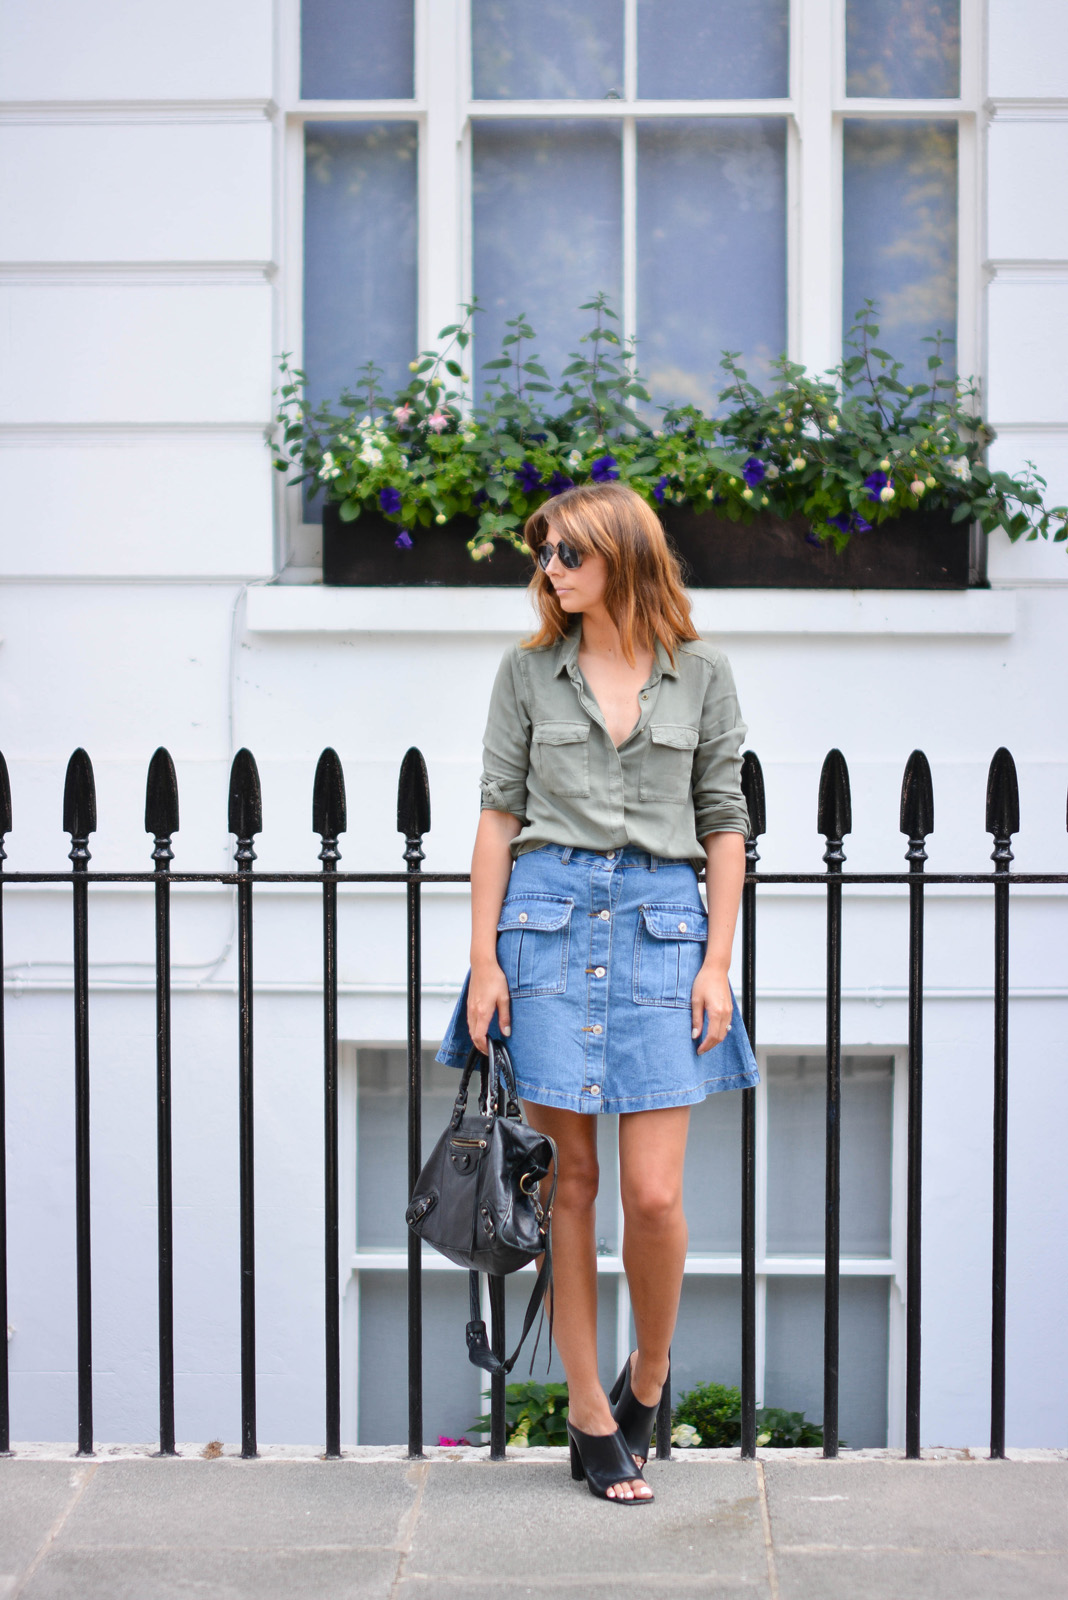 EJSTYLE - Emma Hill wears button up denim skirt with pockets with a khaki shirt, Balenciaga bag, black leather mules, heels, how to dress for summer